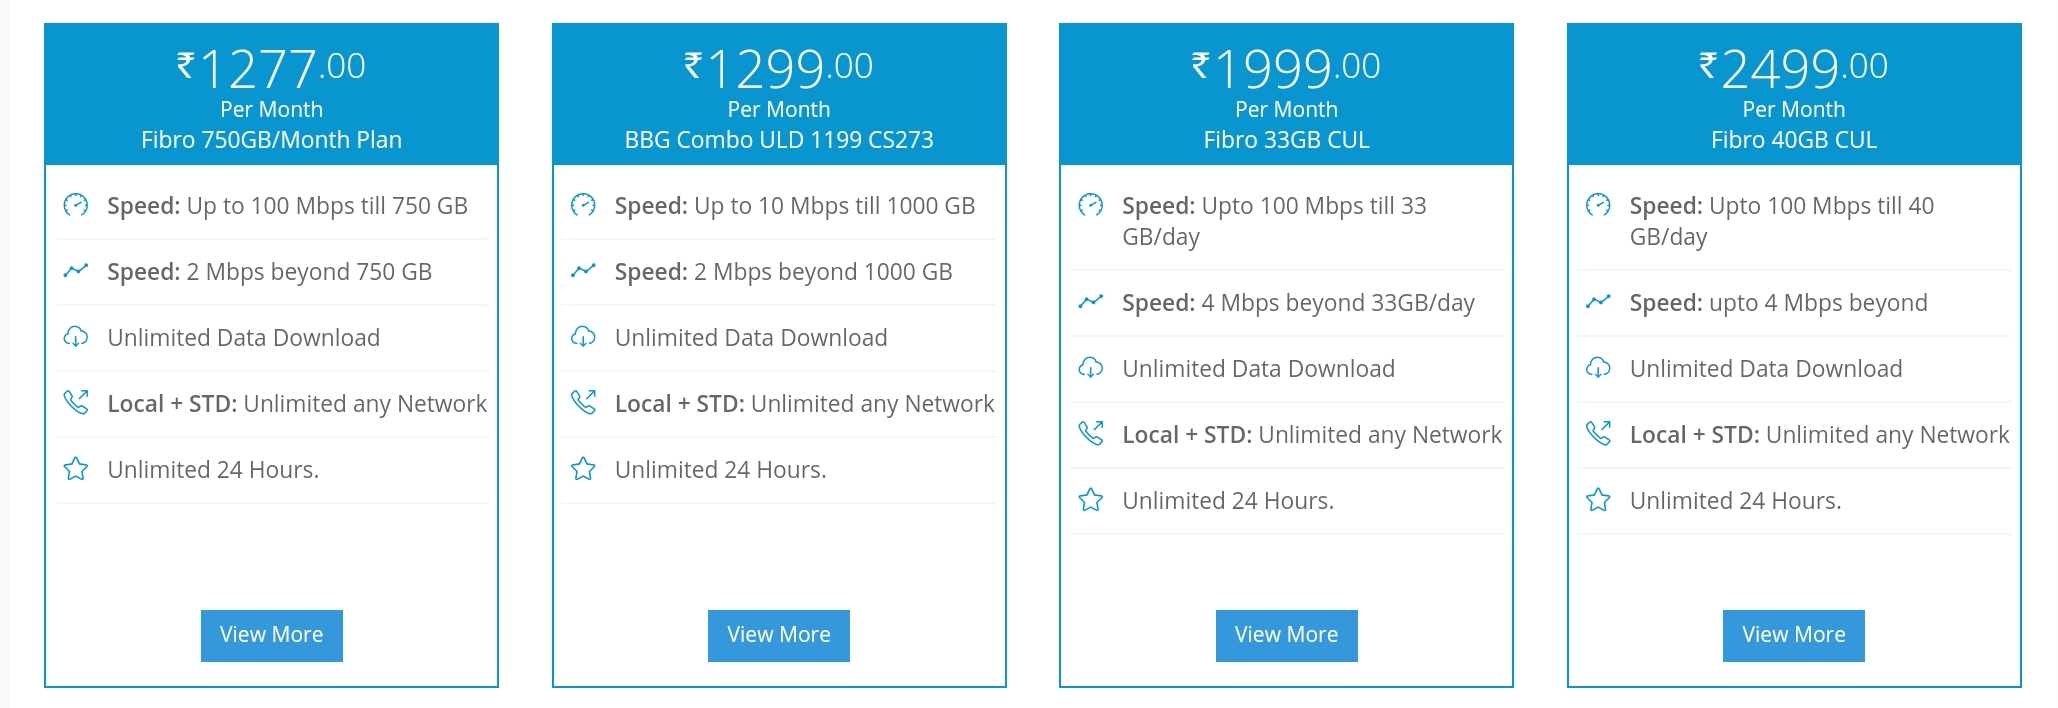 airtel xstream vs jio fiber: how Airtel's new broadband plans compare to those of Reliance JioFiber, Tata Sky and BSNL